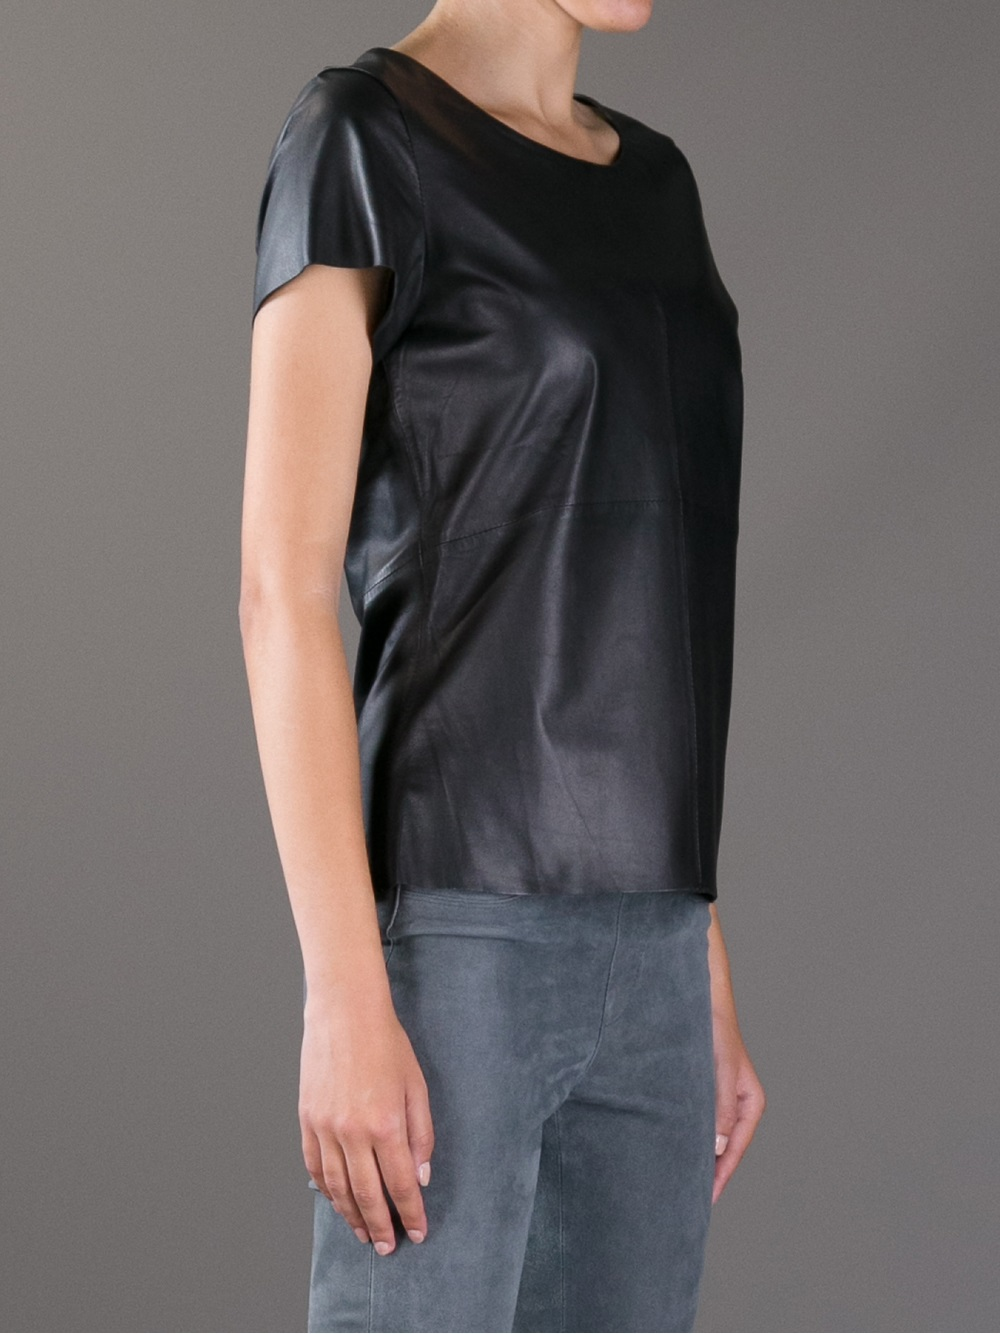 Find great deals on eBay for leather sleeve t shirt. Shop with confidence.